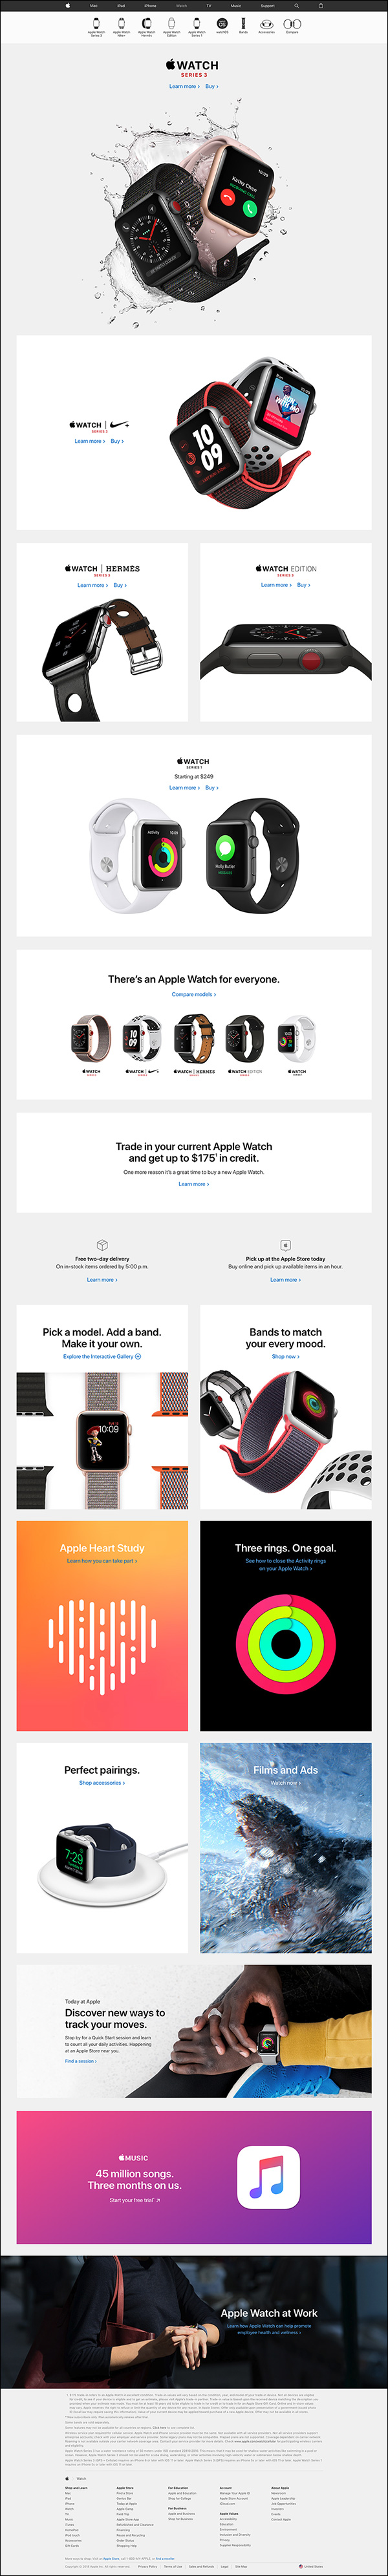 Apple watch product page